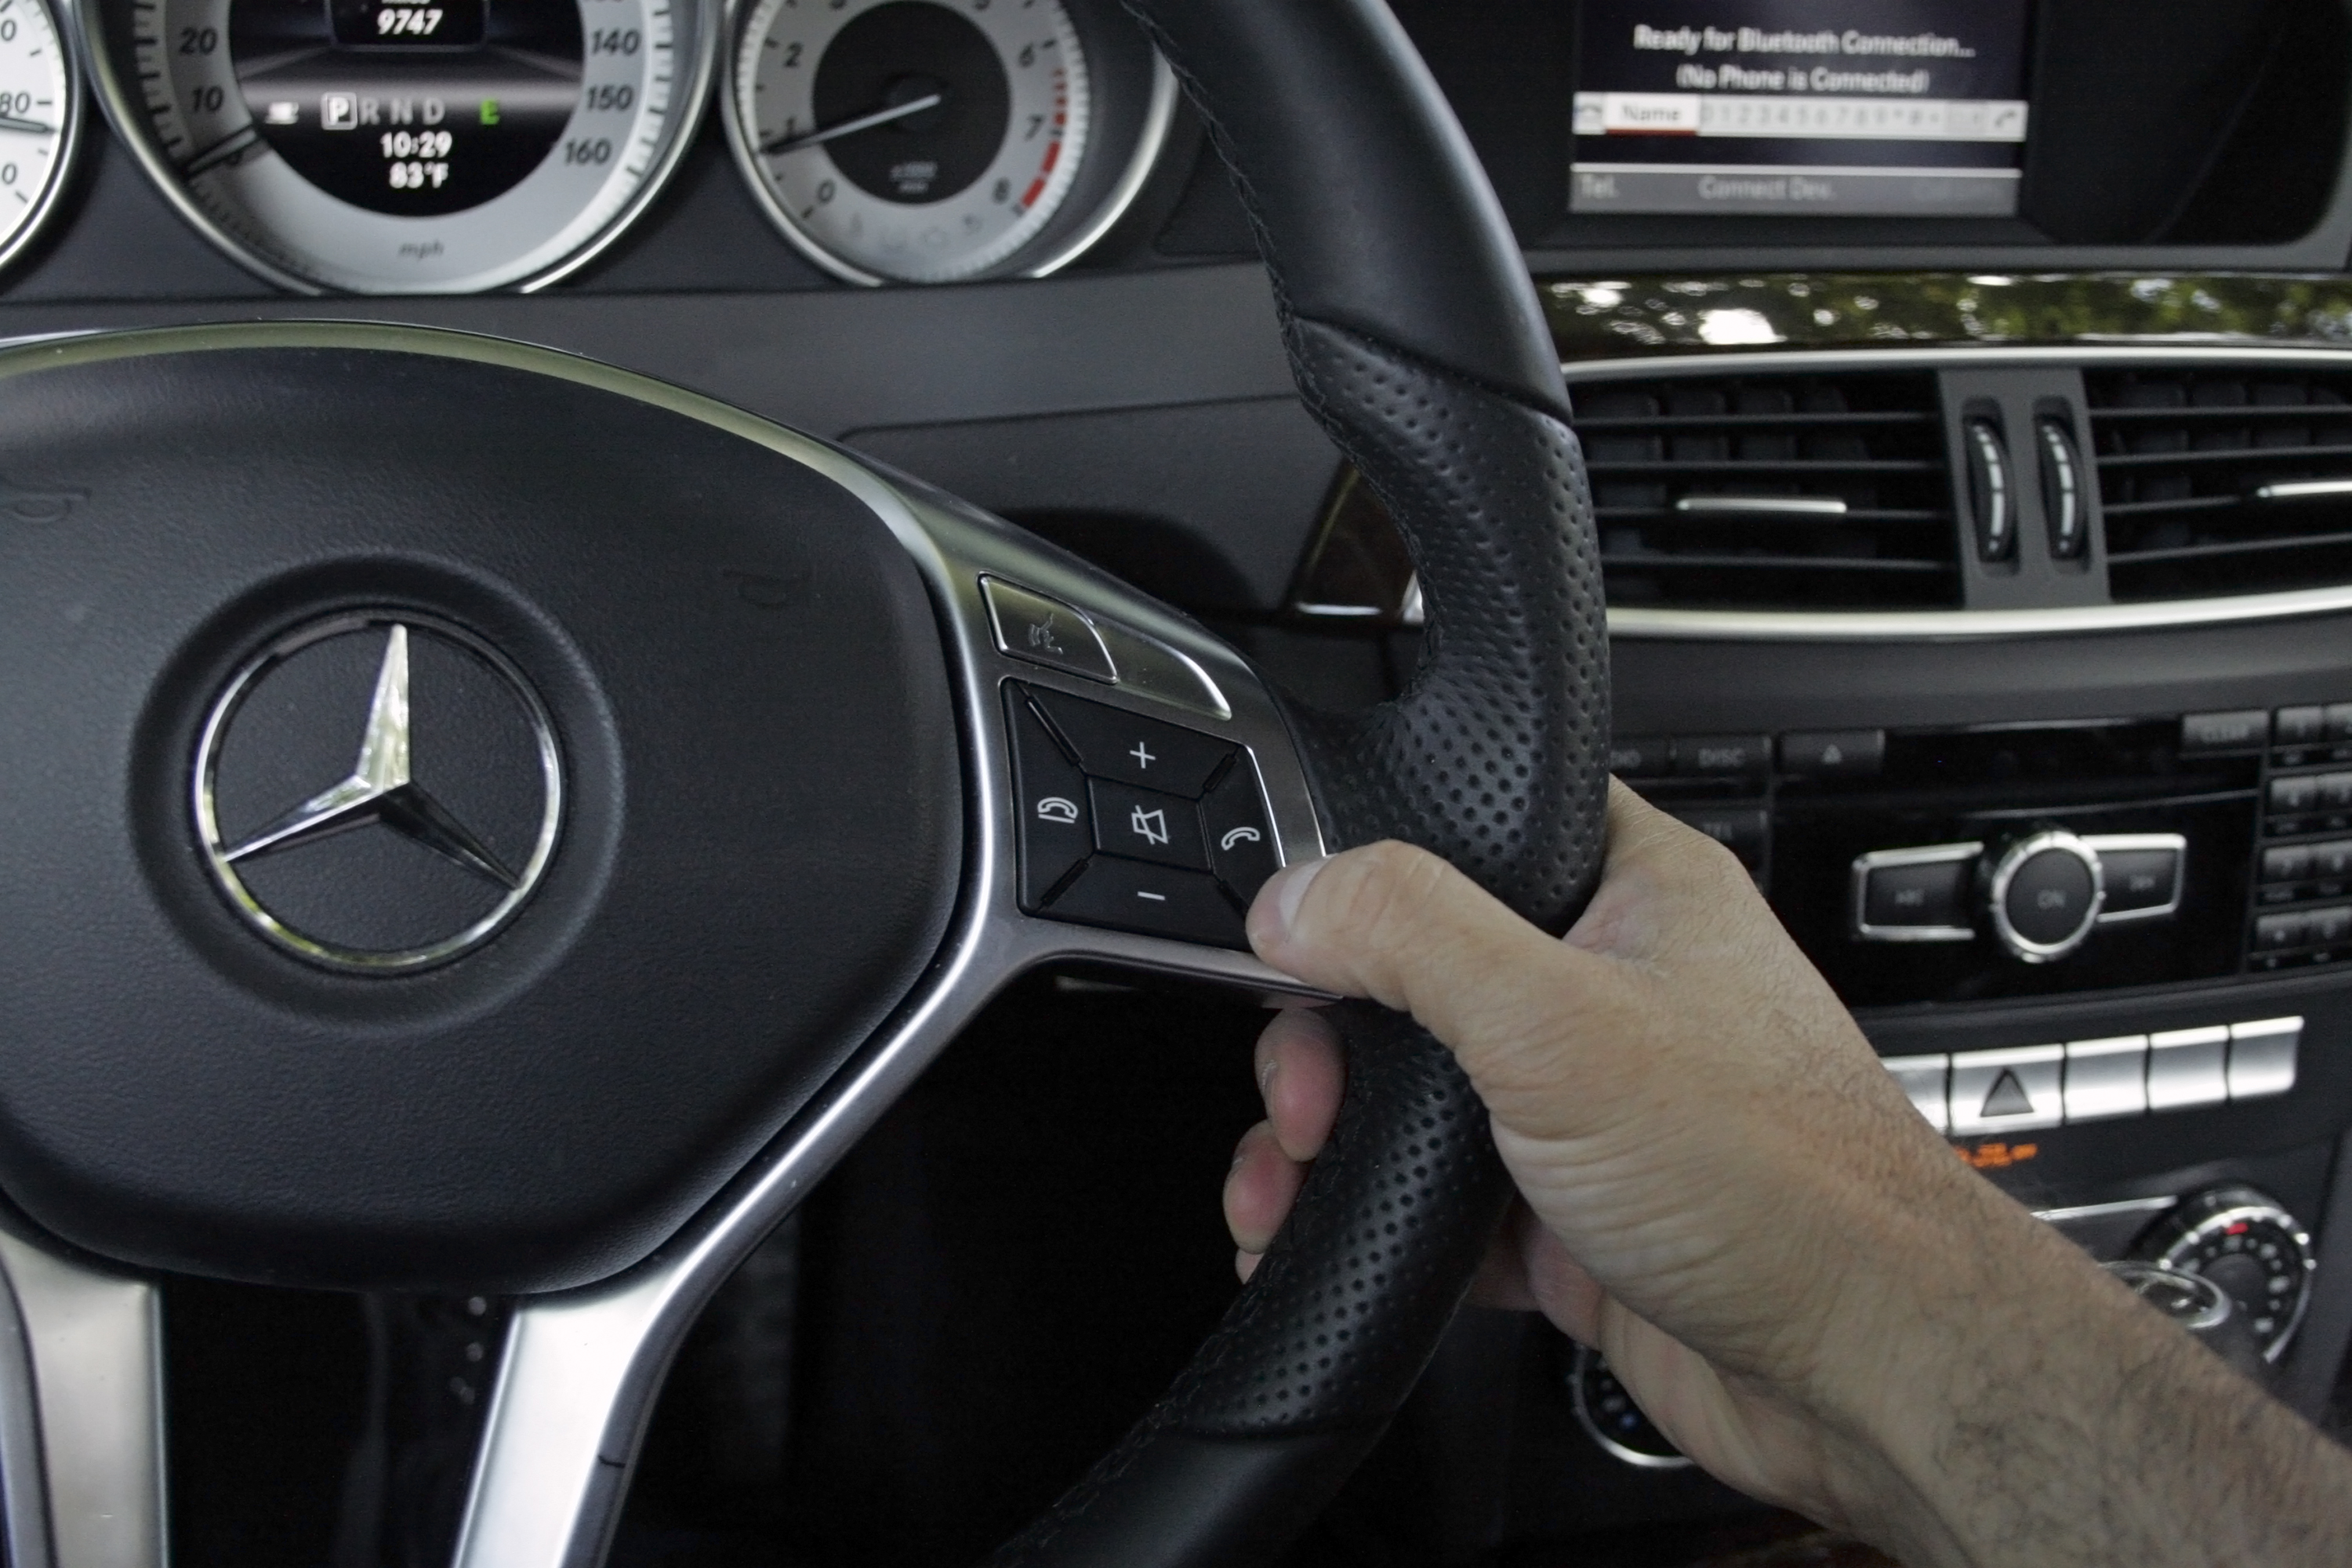 how to connect to an outbuilt bluetooth in a car